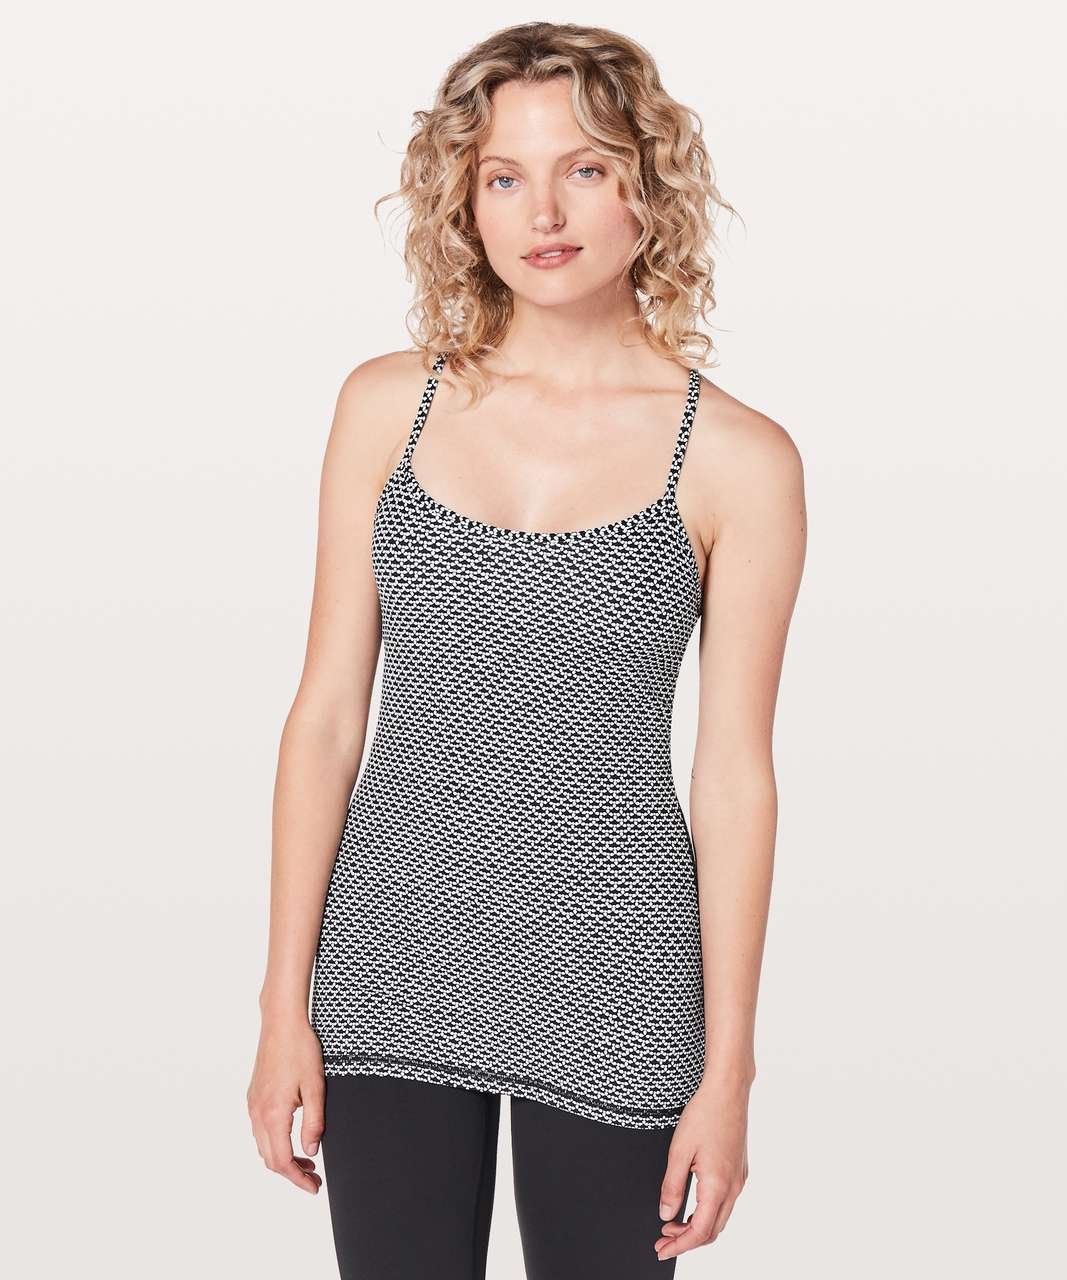 b339a0eecacce Lululemon Power Y Tank  Luon - Monochromic Black - lulu fanatics